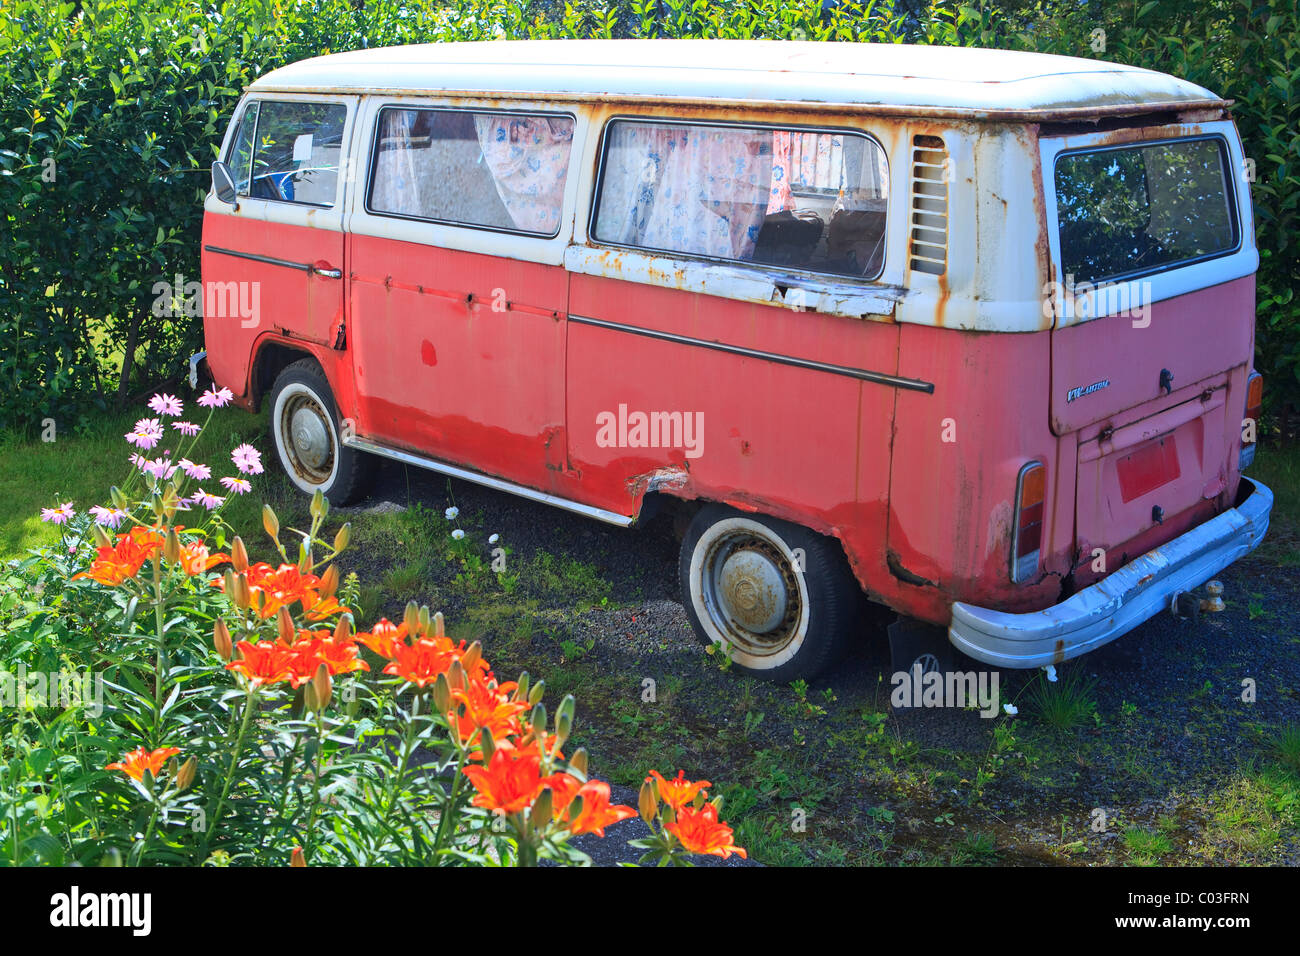 Old red and white VW bus, Reykjavik, Iceland, Europe - Stock Image